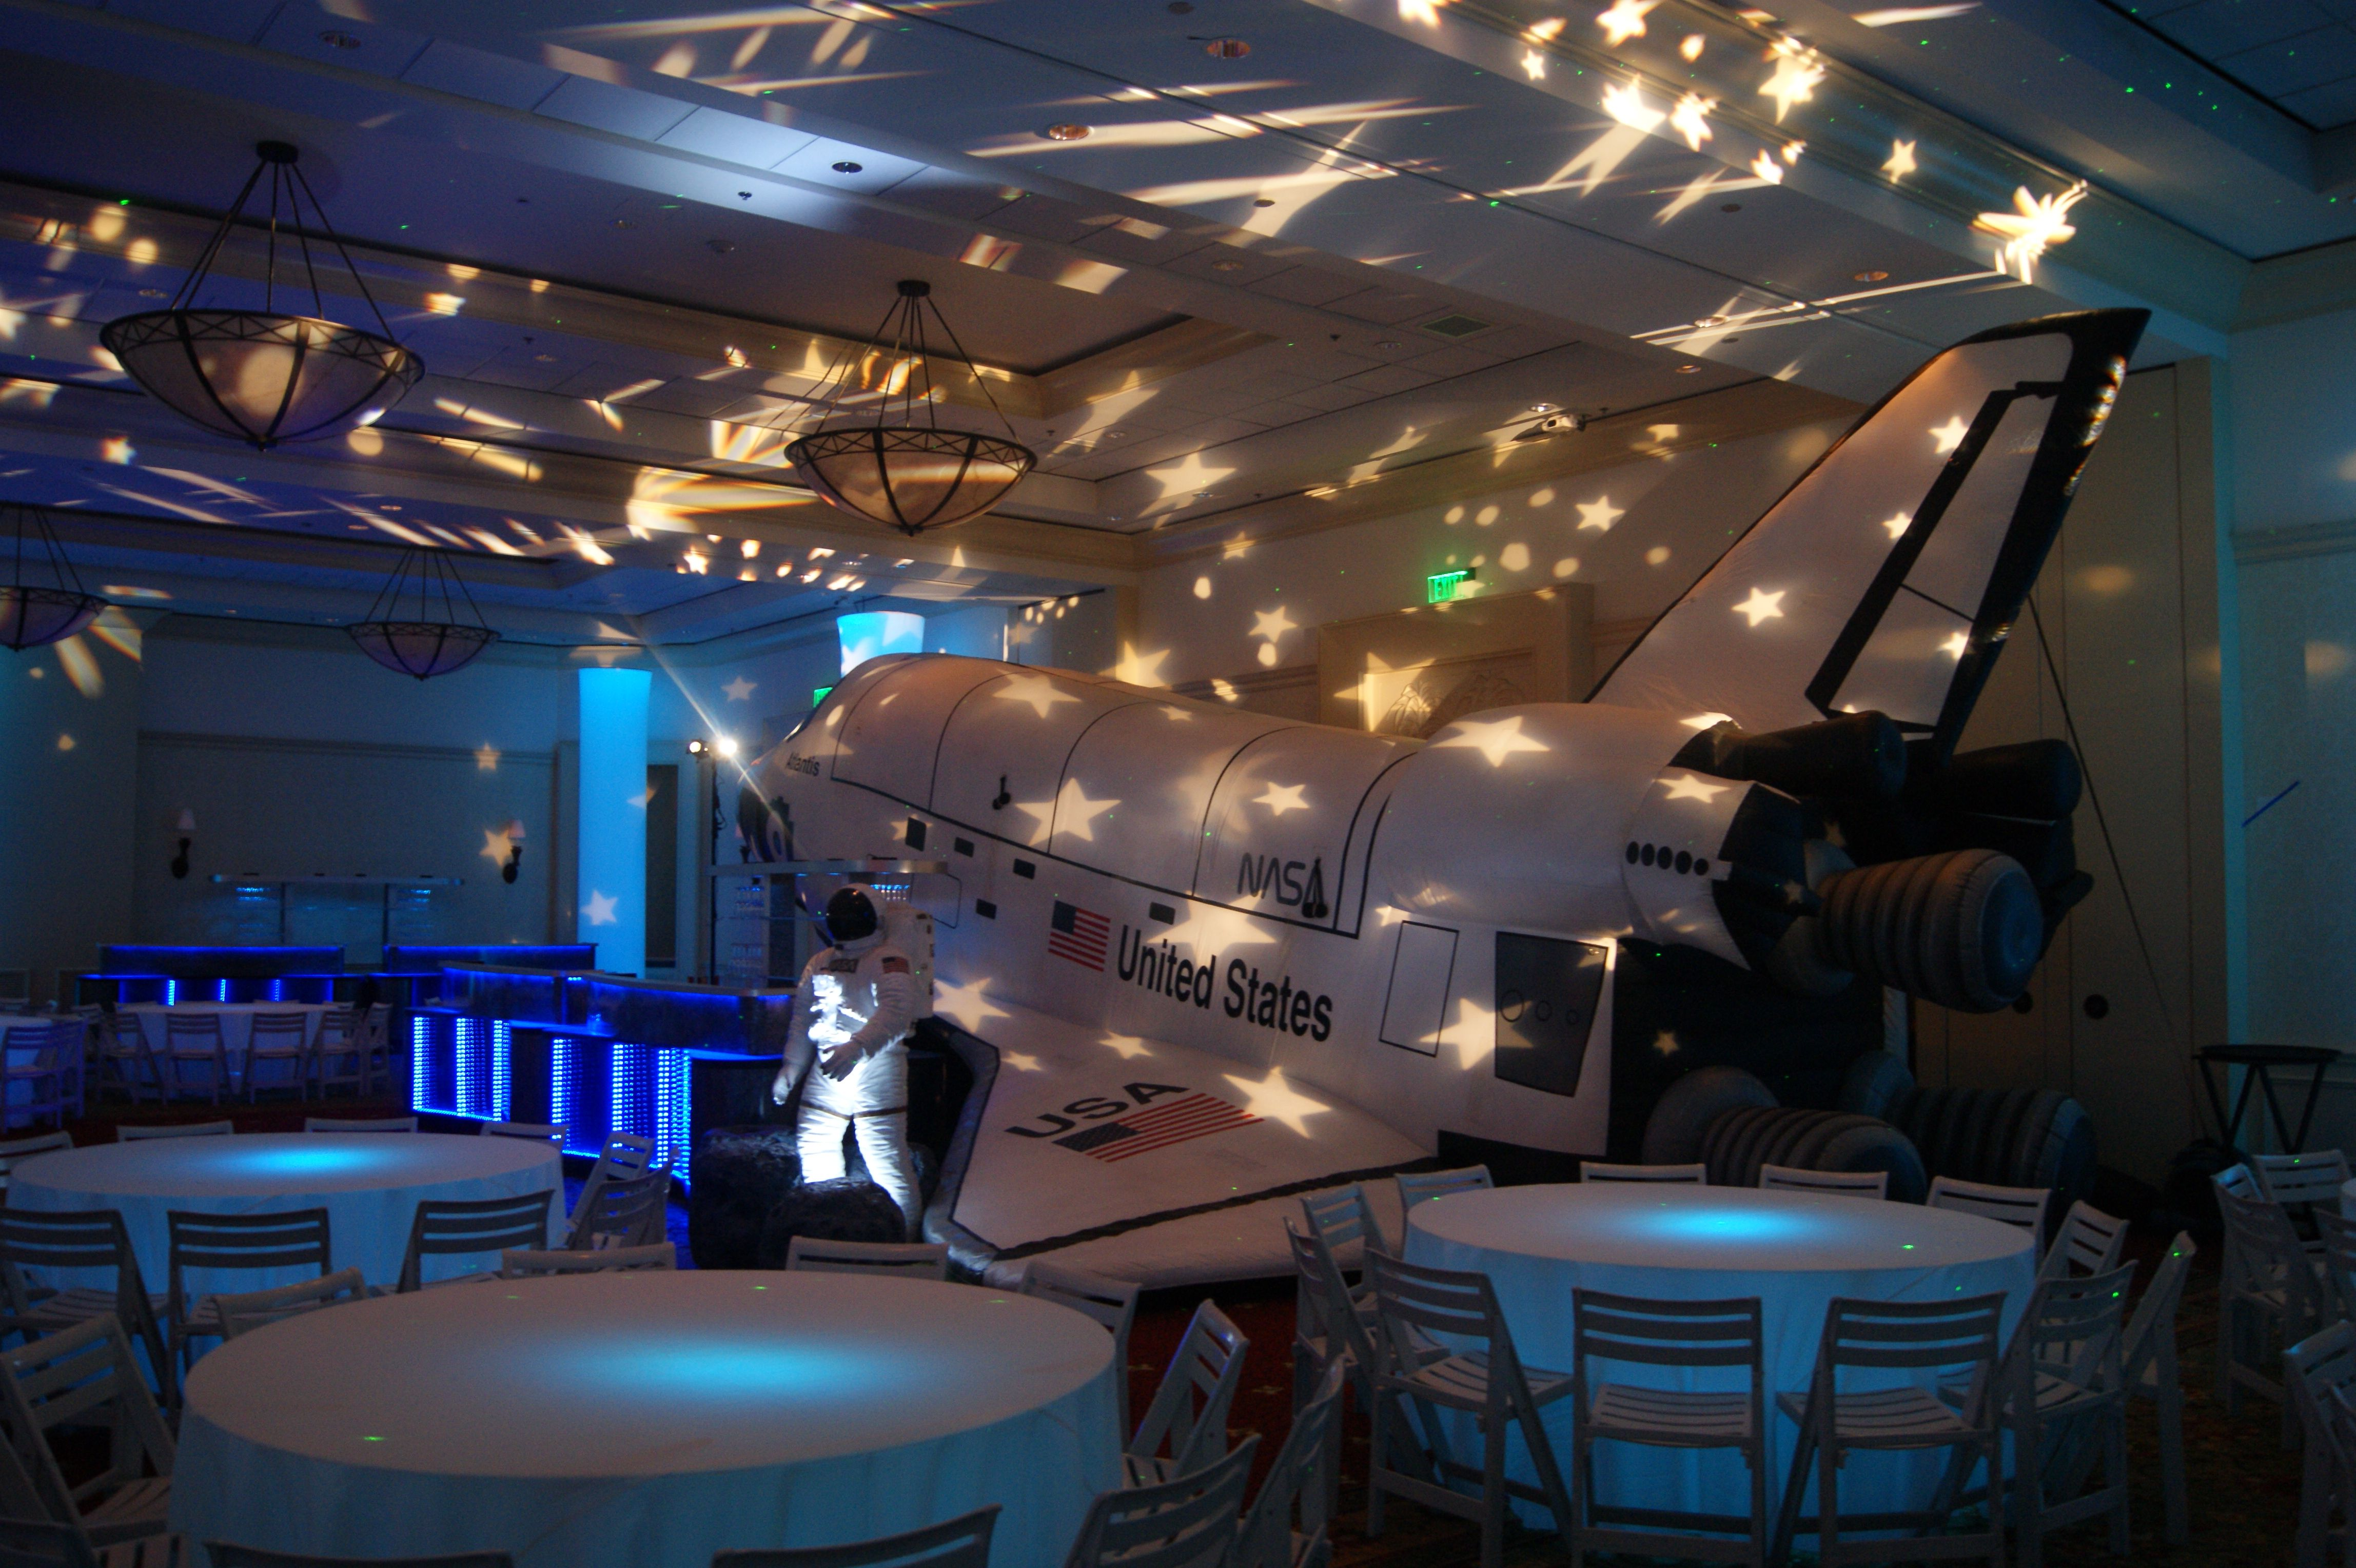 Out Of This World Space Themed Decor And Lighting By